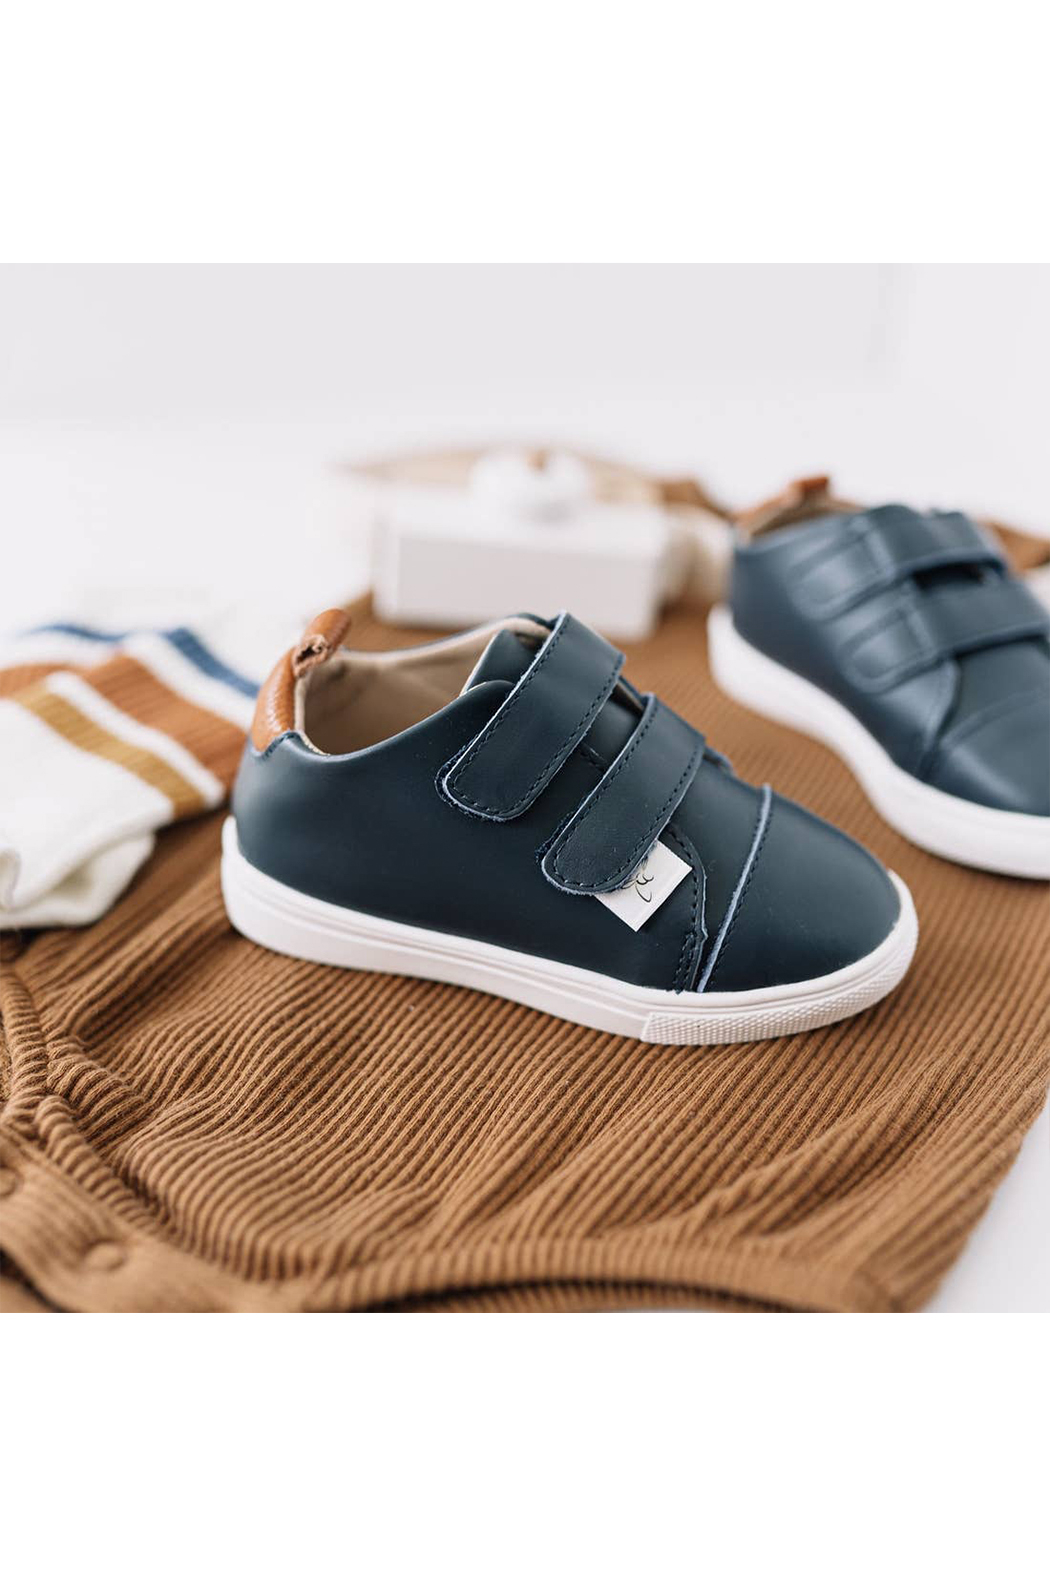 Little Love Bug Company Casual Navy Low Top Moccasin - Side Cropped Image